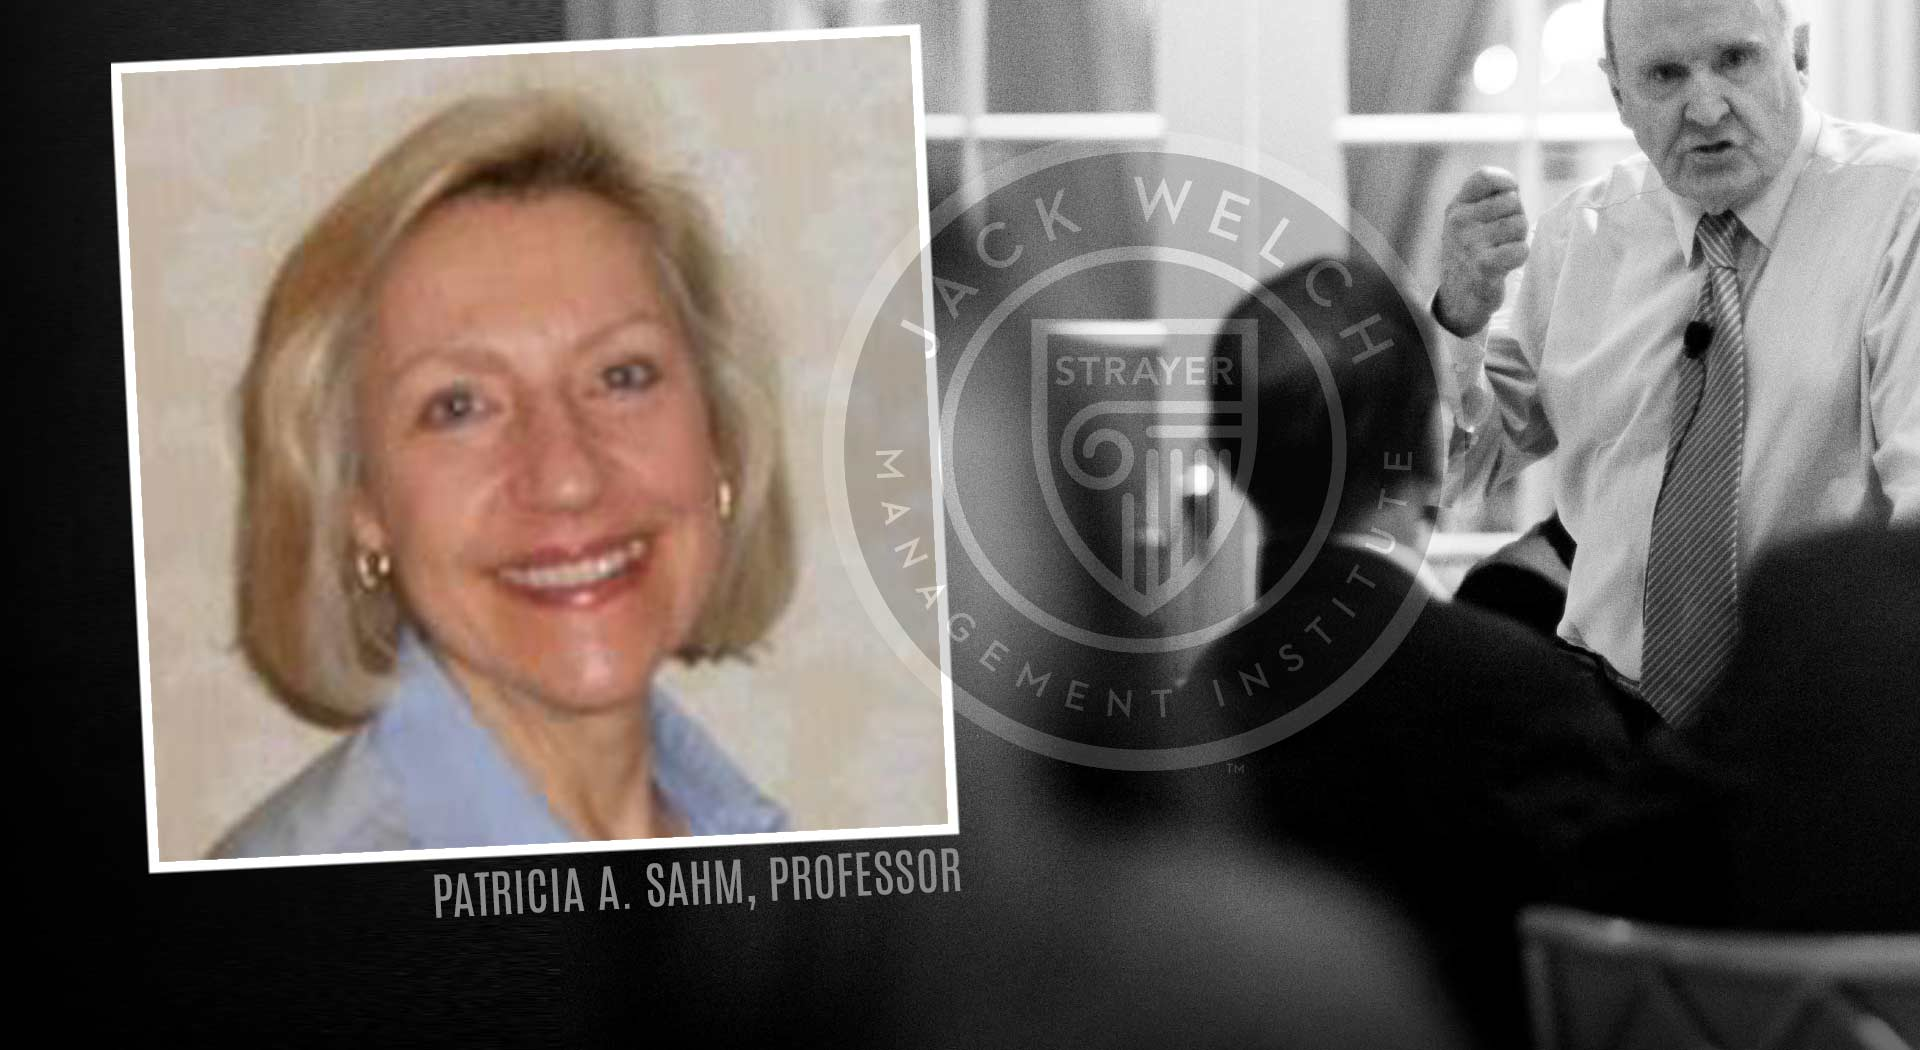 Jack Welch MBA Faculty Profile: Patricia Sahm